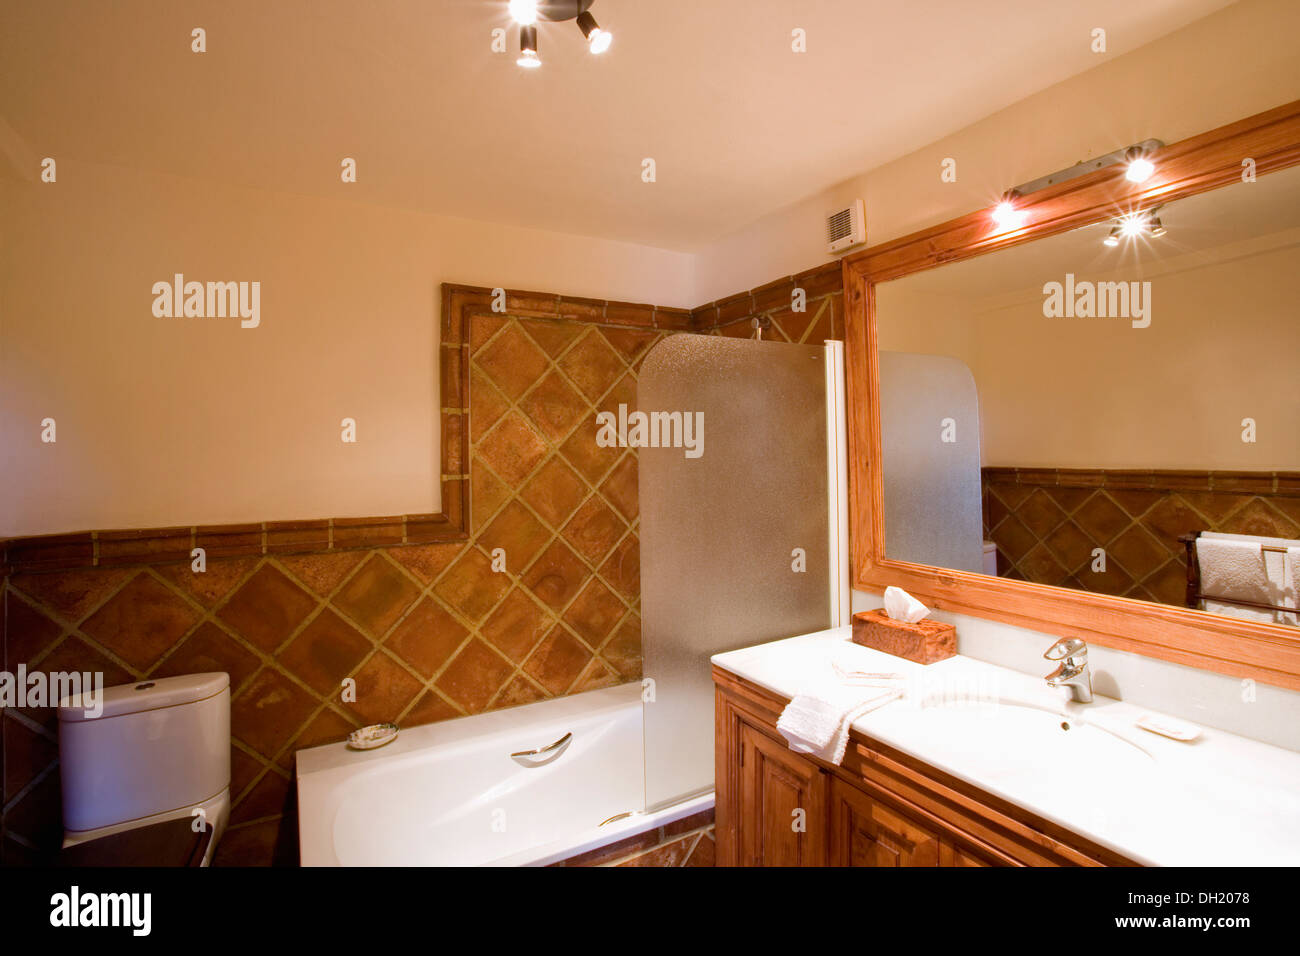 Glass screen on bath in modern bathroom with terracotta wall tiles glass screen on bath in modern bathroom with terracotta wall tiles and lighted mirror above basin in vanity unit dailygadgetfo Gallery